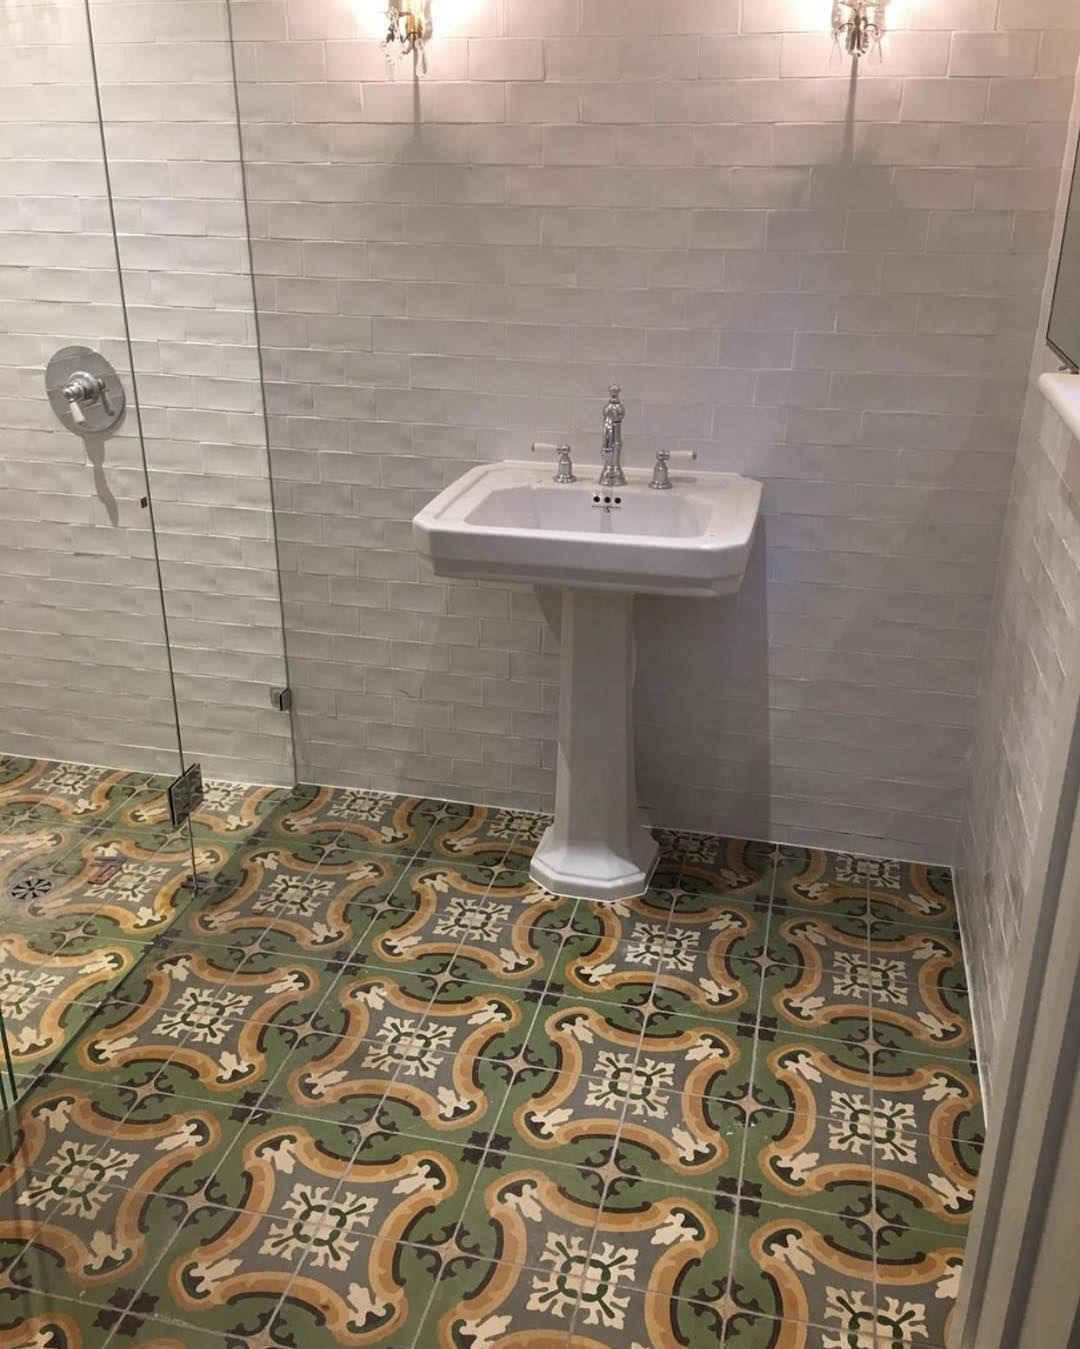 Pin By Michelle Anderson On Dream Bathroom Ideas Encaustic Tile Dream Bathrooms Dream Bathroom